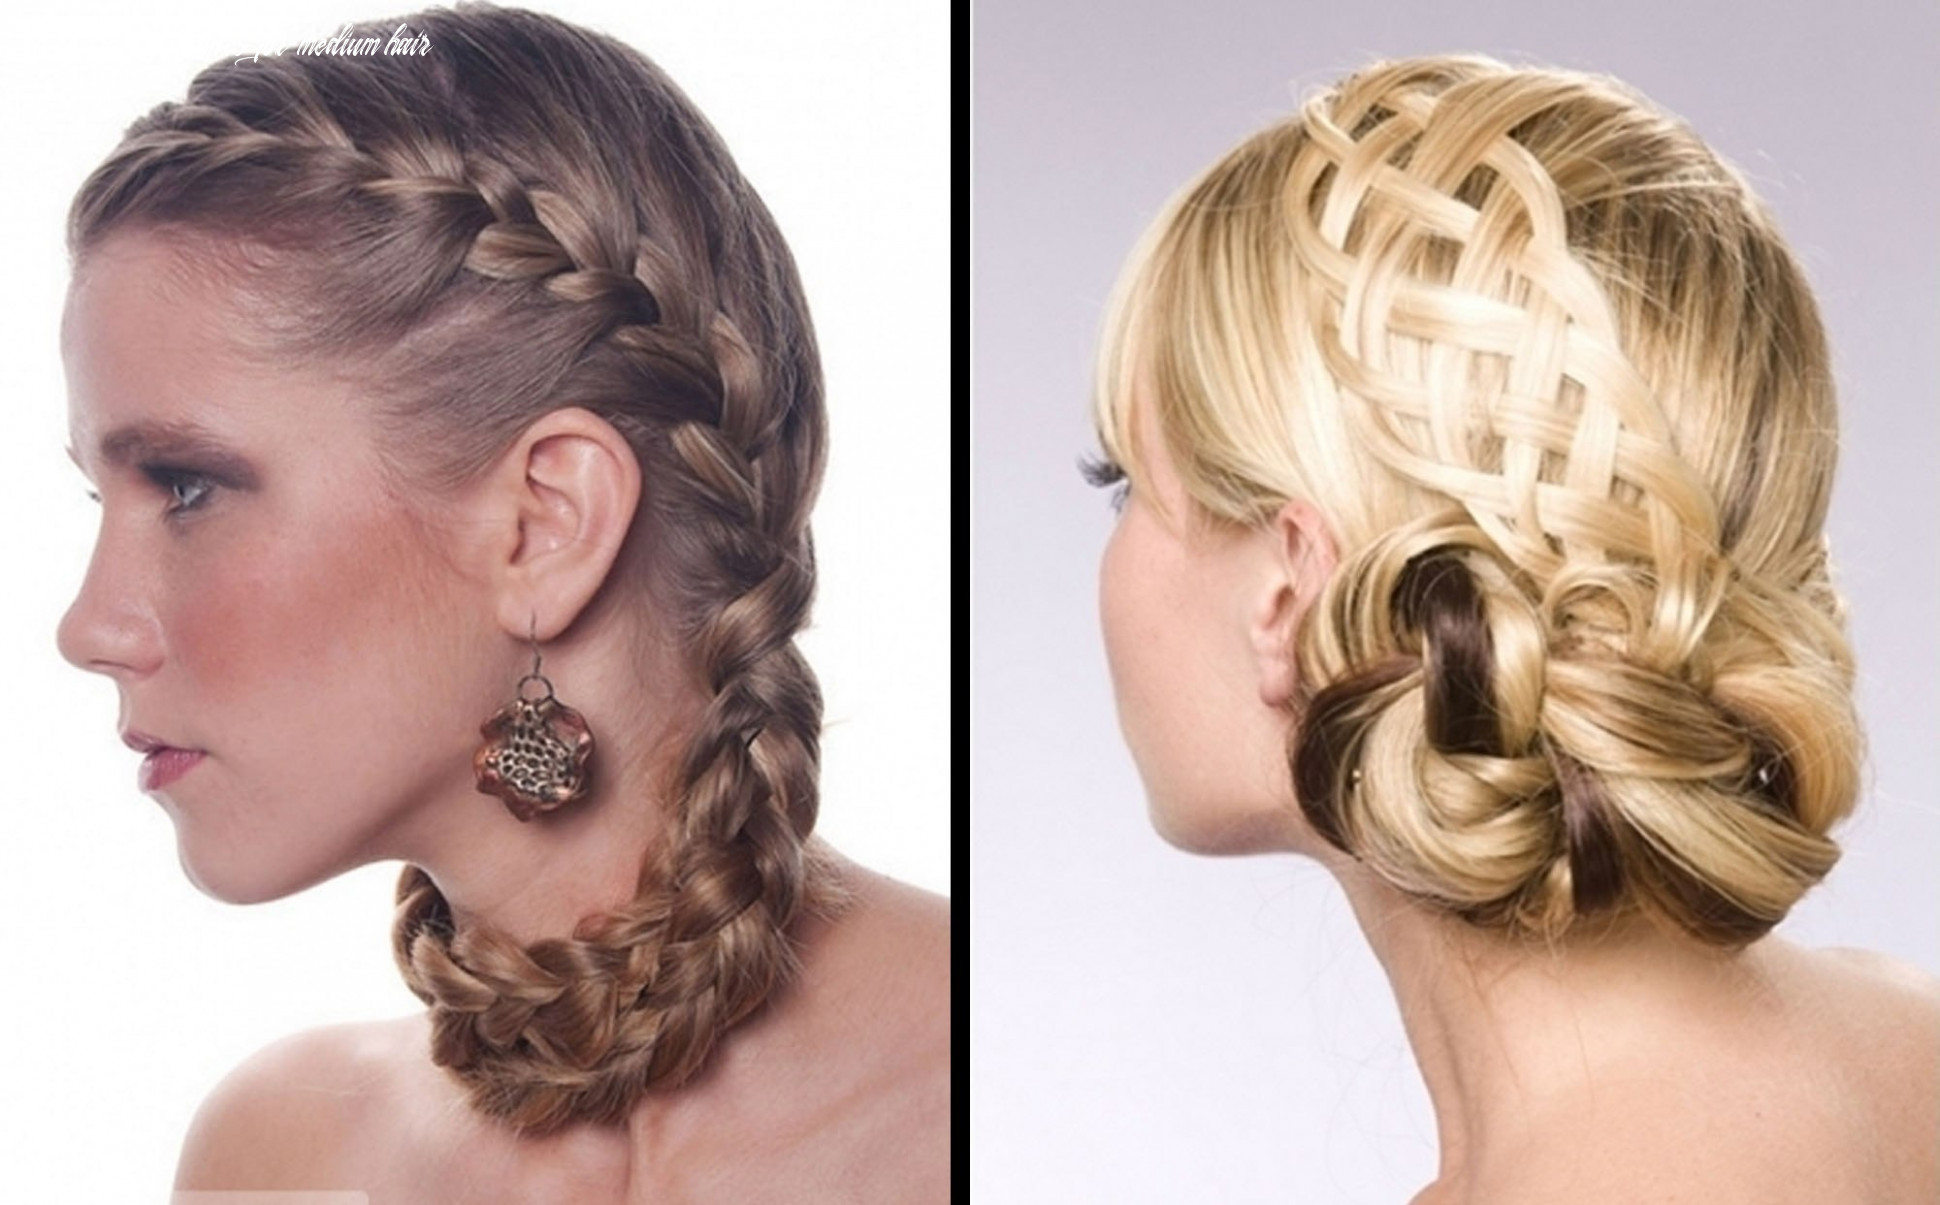 Easy prom hairstyles for medium length hair - Hairstyles for Women